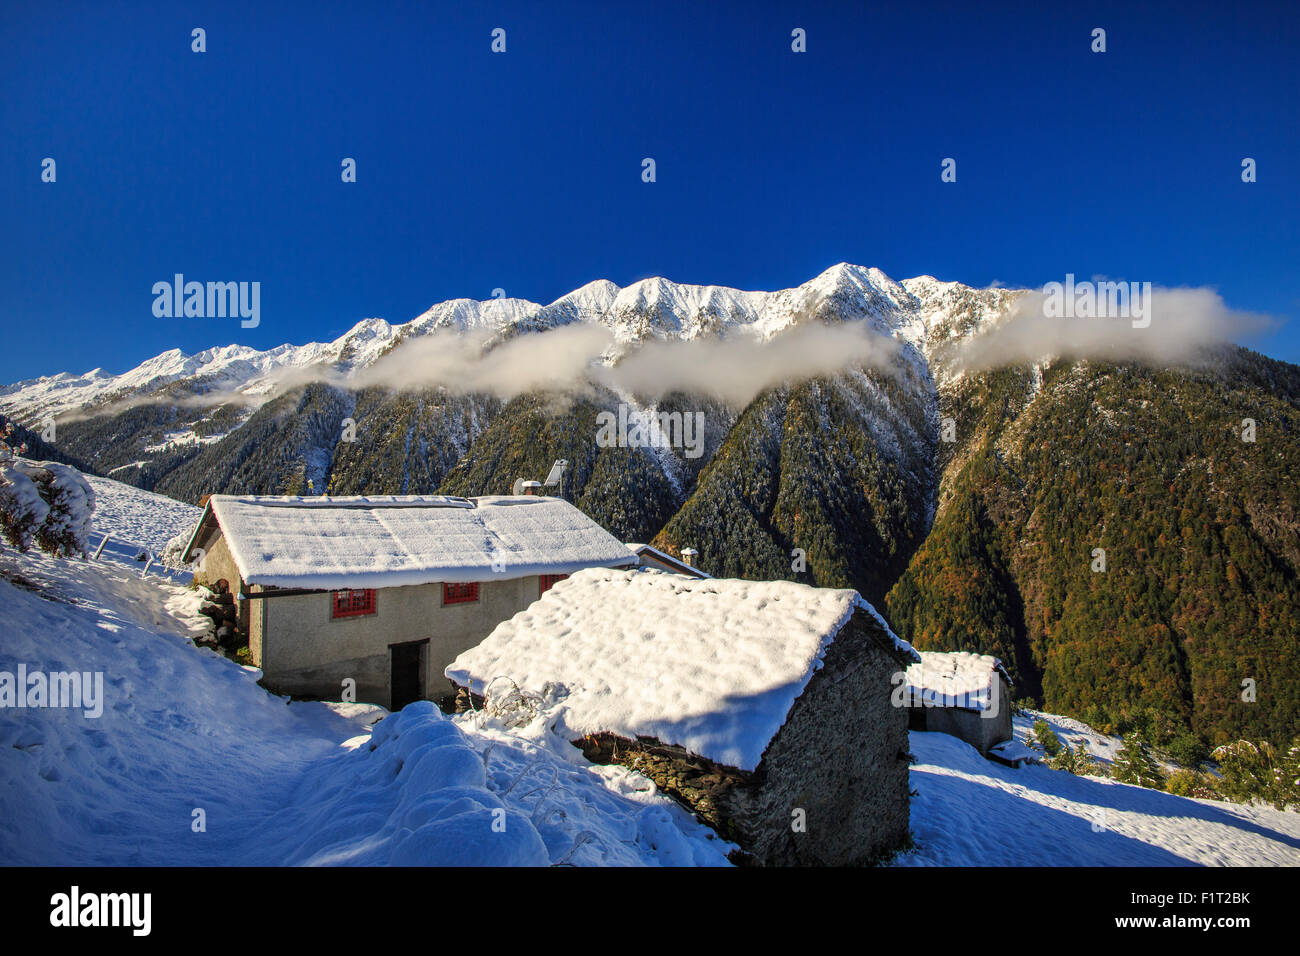 Mountain houses framed by snowy peaks, San Salvatore, Livrio Valley ...